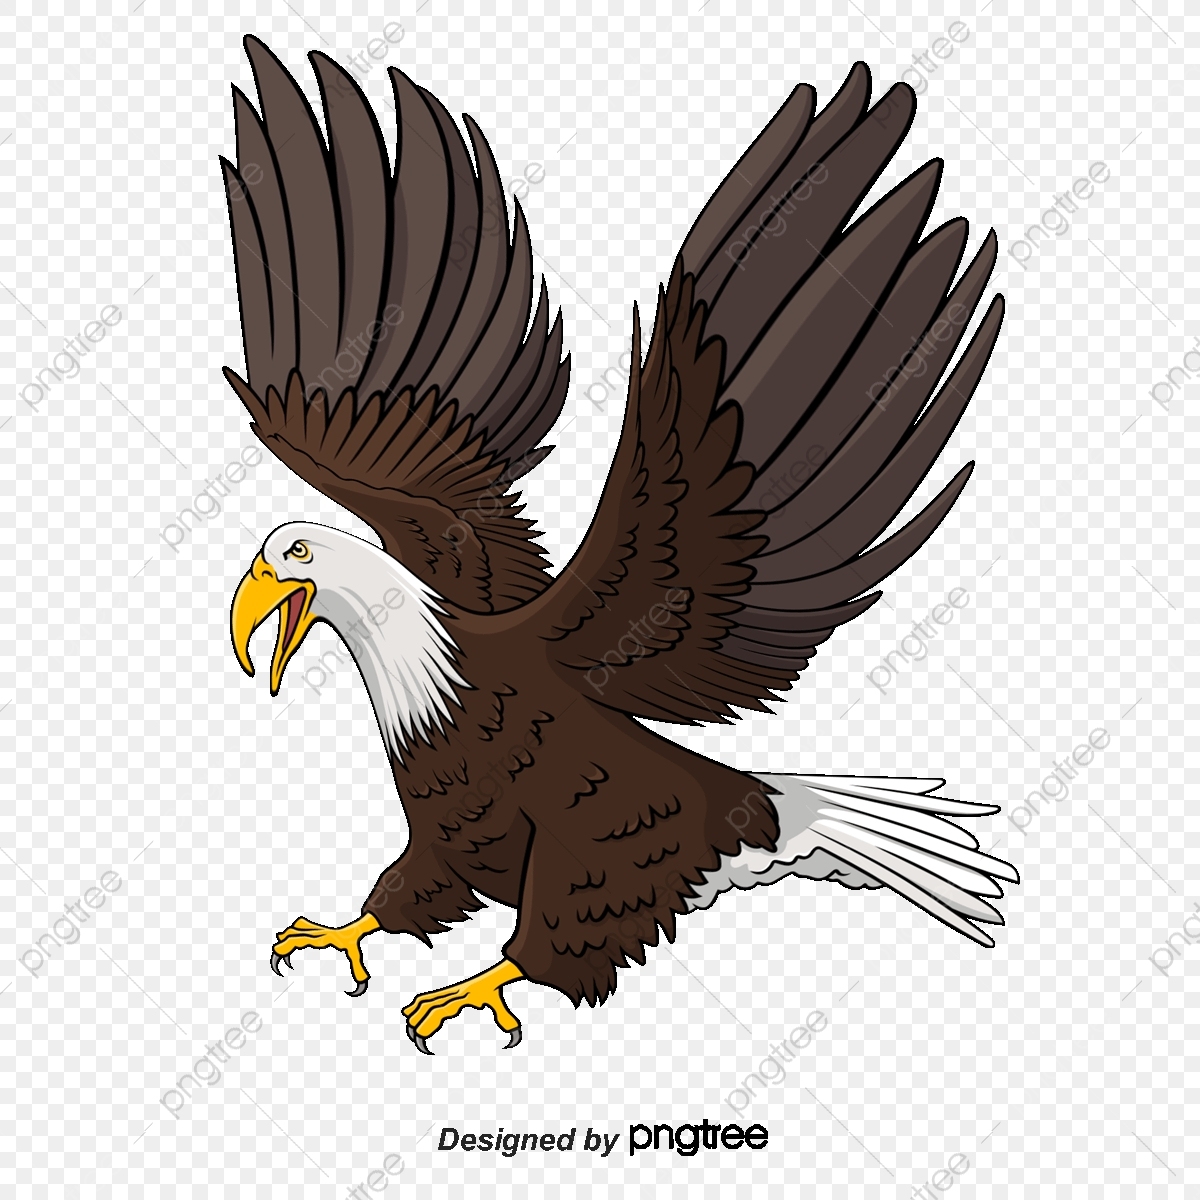 eagle eagle vector wings png transparent clipart image and psd file for free download https pngtree com freepng eagle 1474578 html